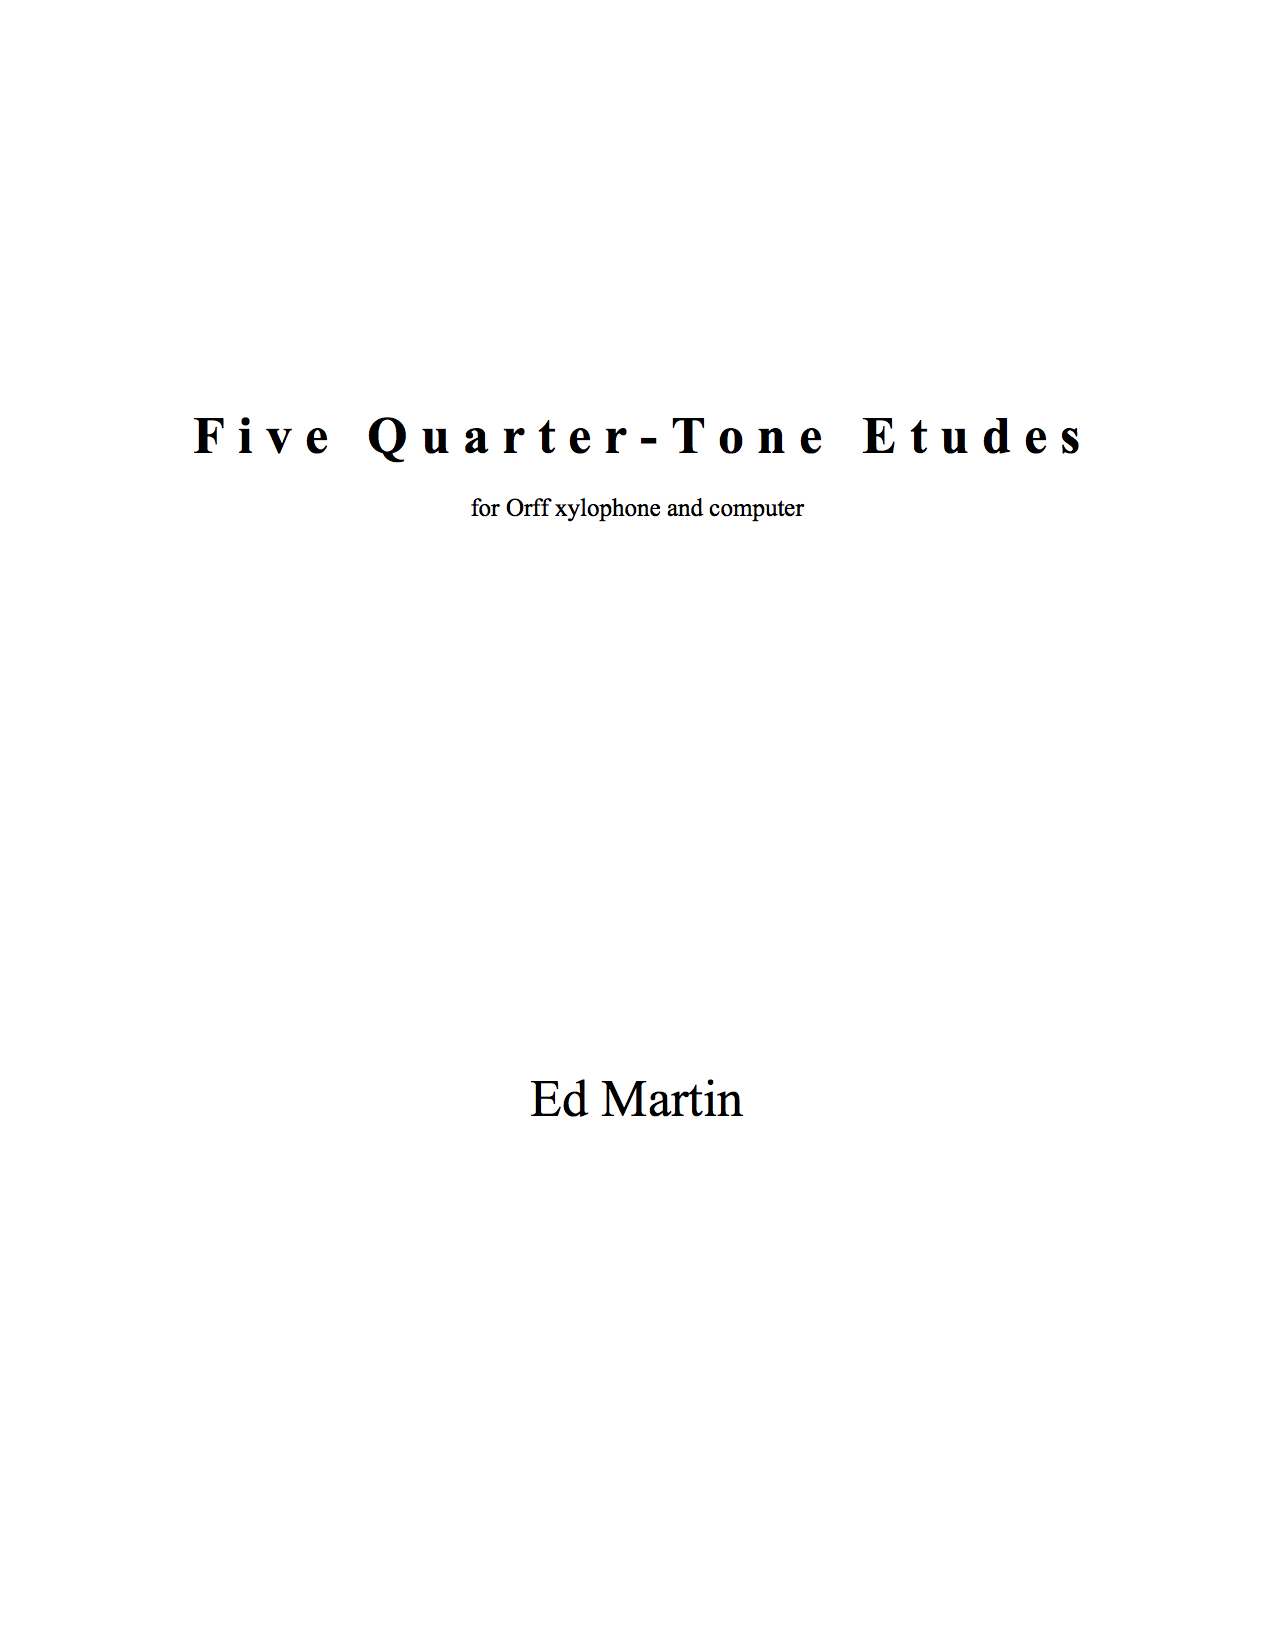 Quarter Tone Etudes for Orff Xylophone (dragged).jpg